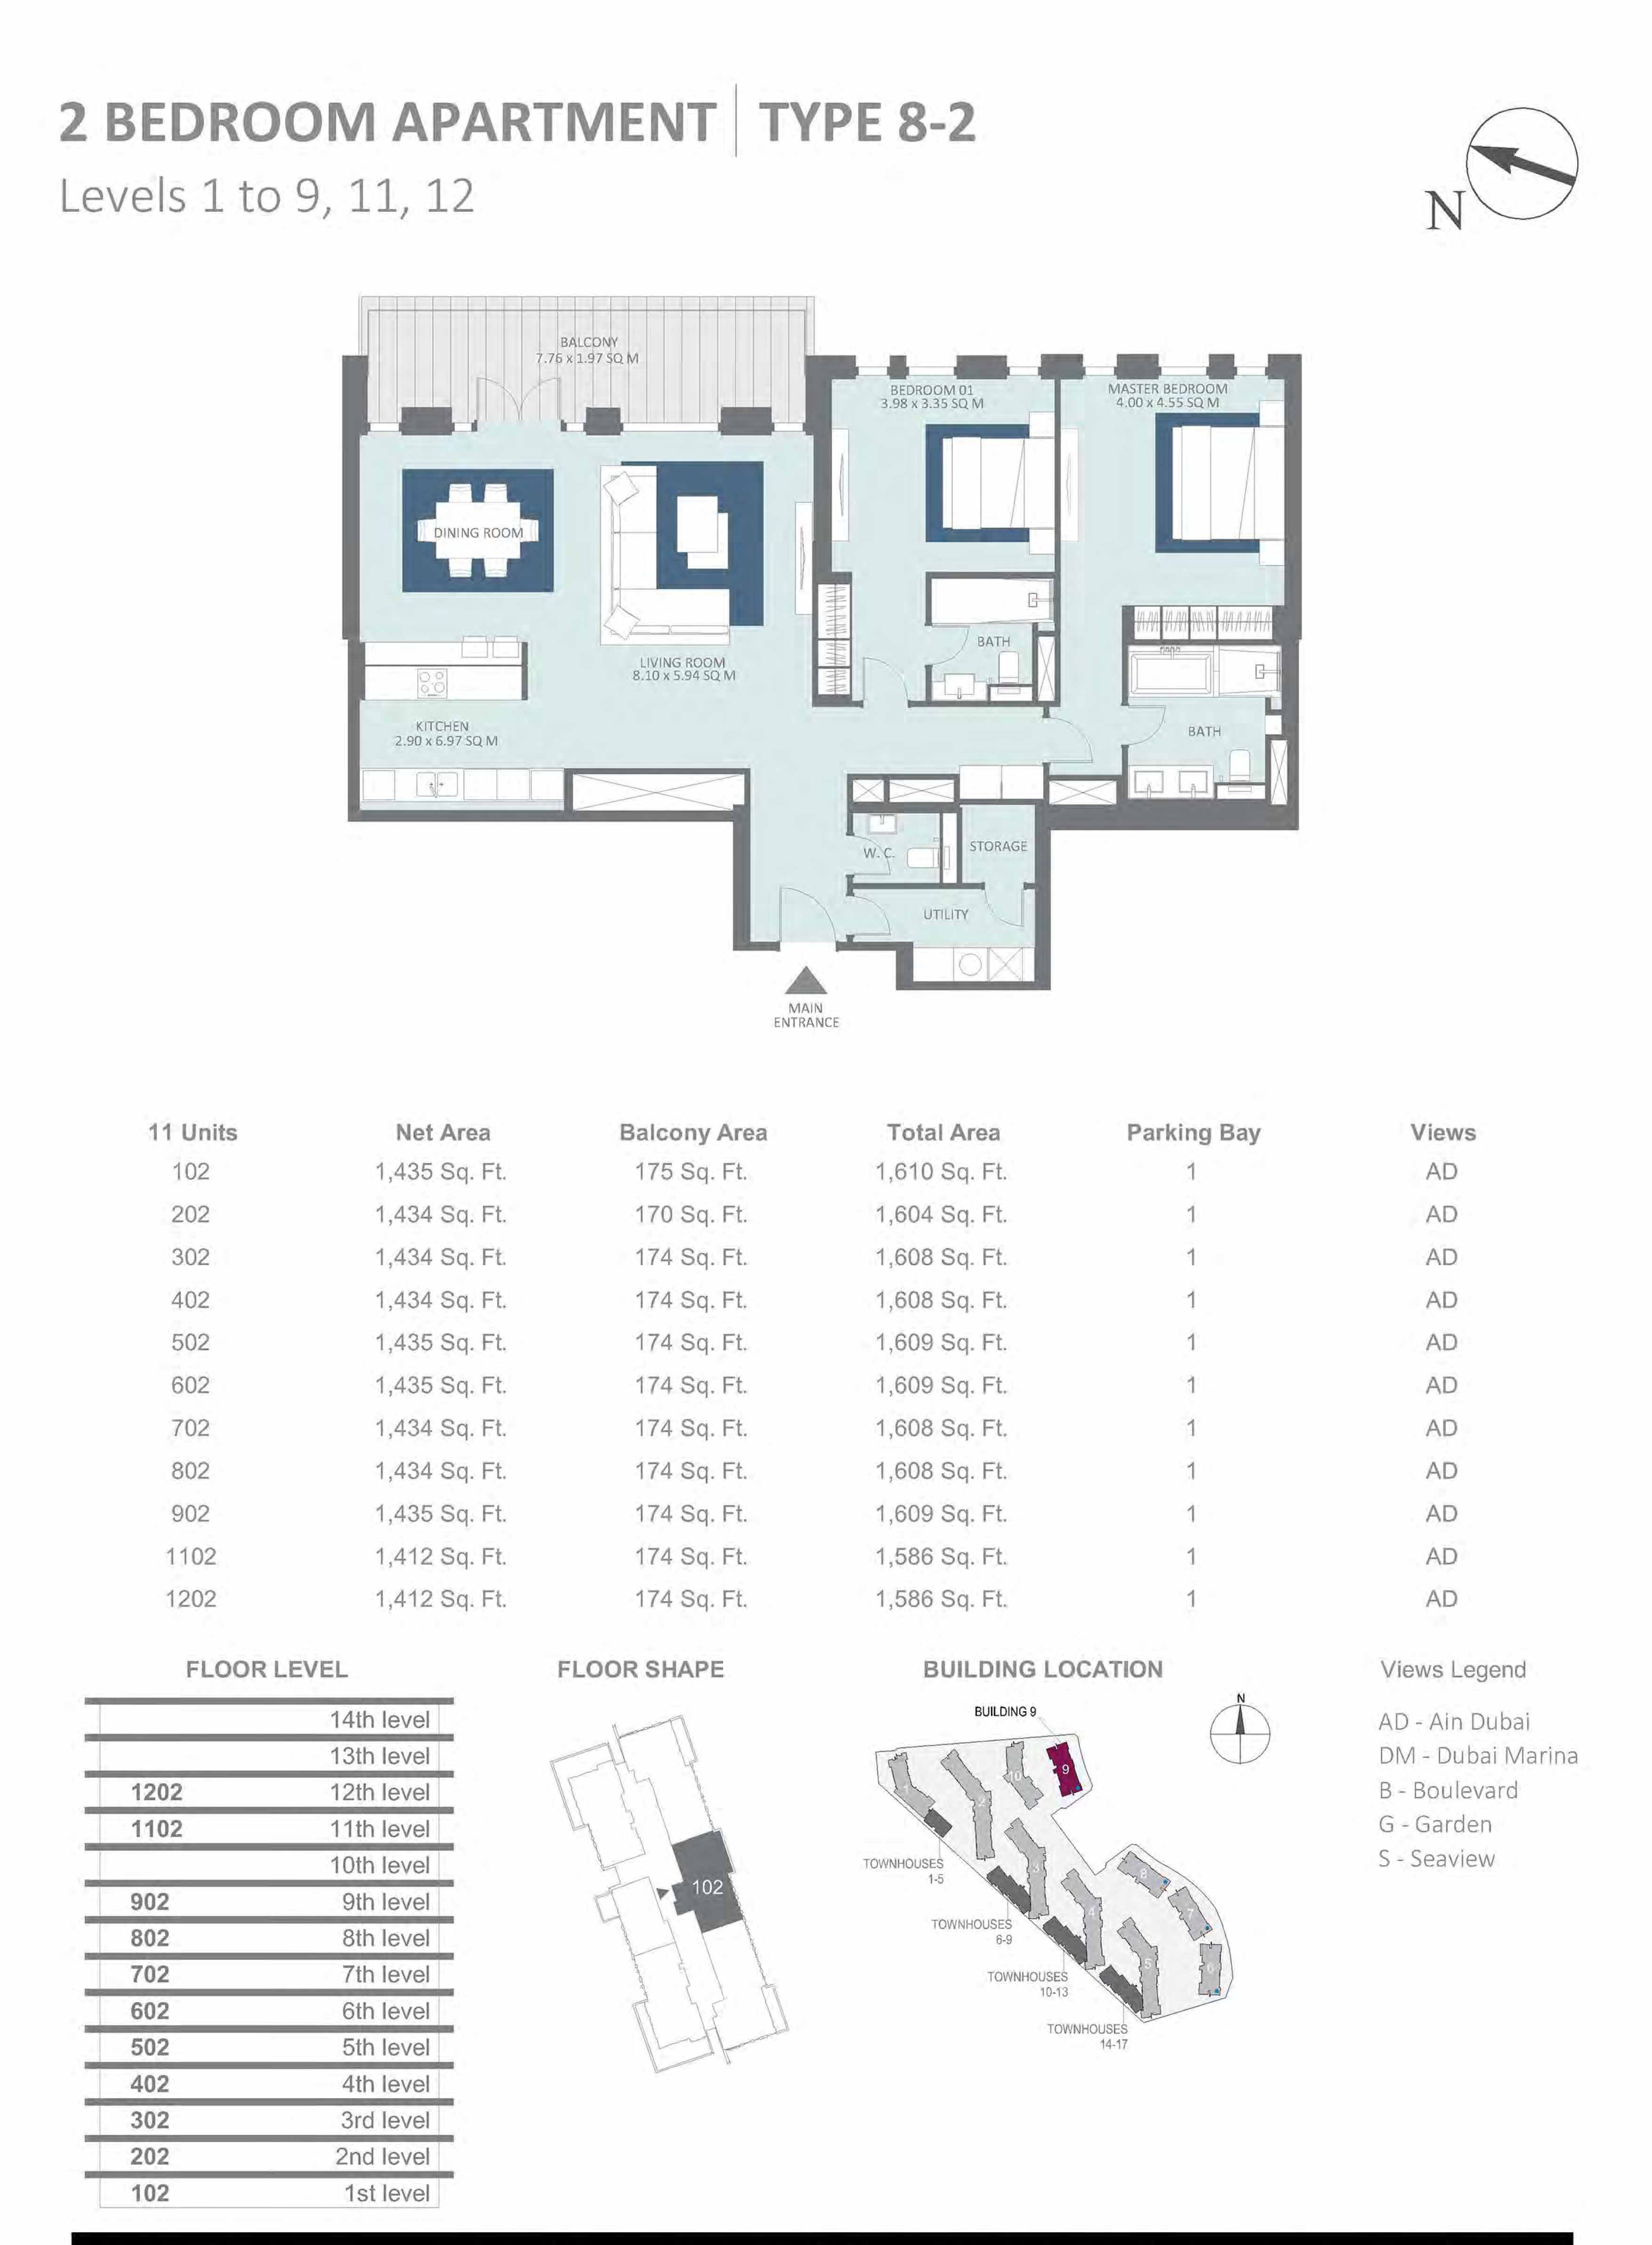 Building 9 - 2 Bedroom Type 8-2, Level 1-to-9 Size 1586 to 1610 sq.ft